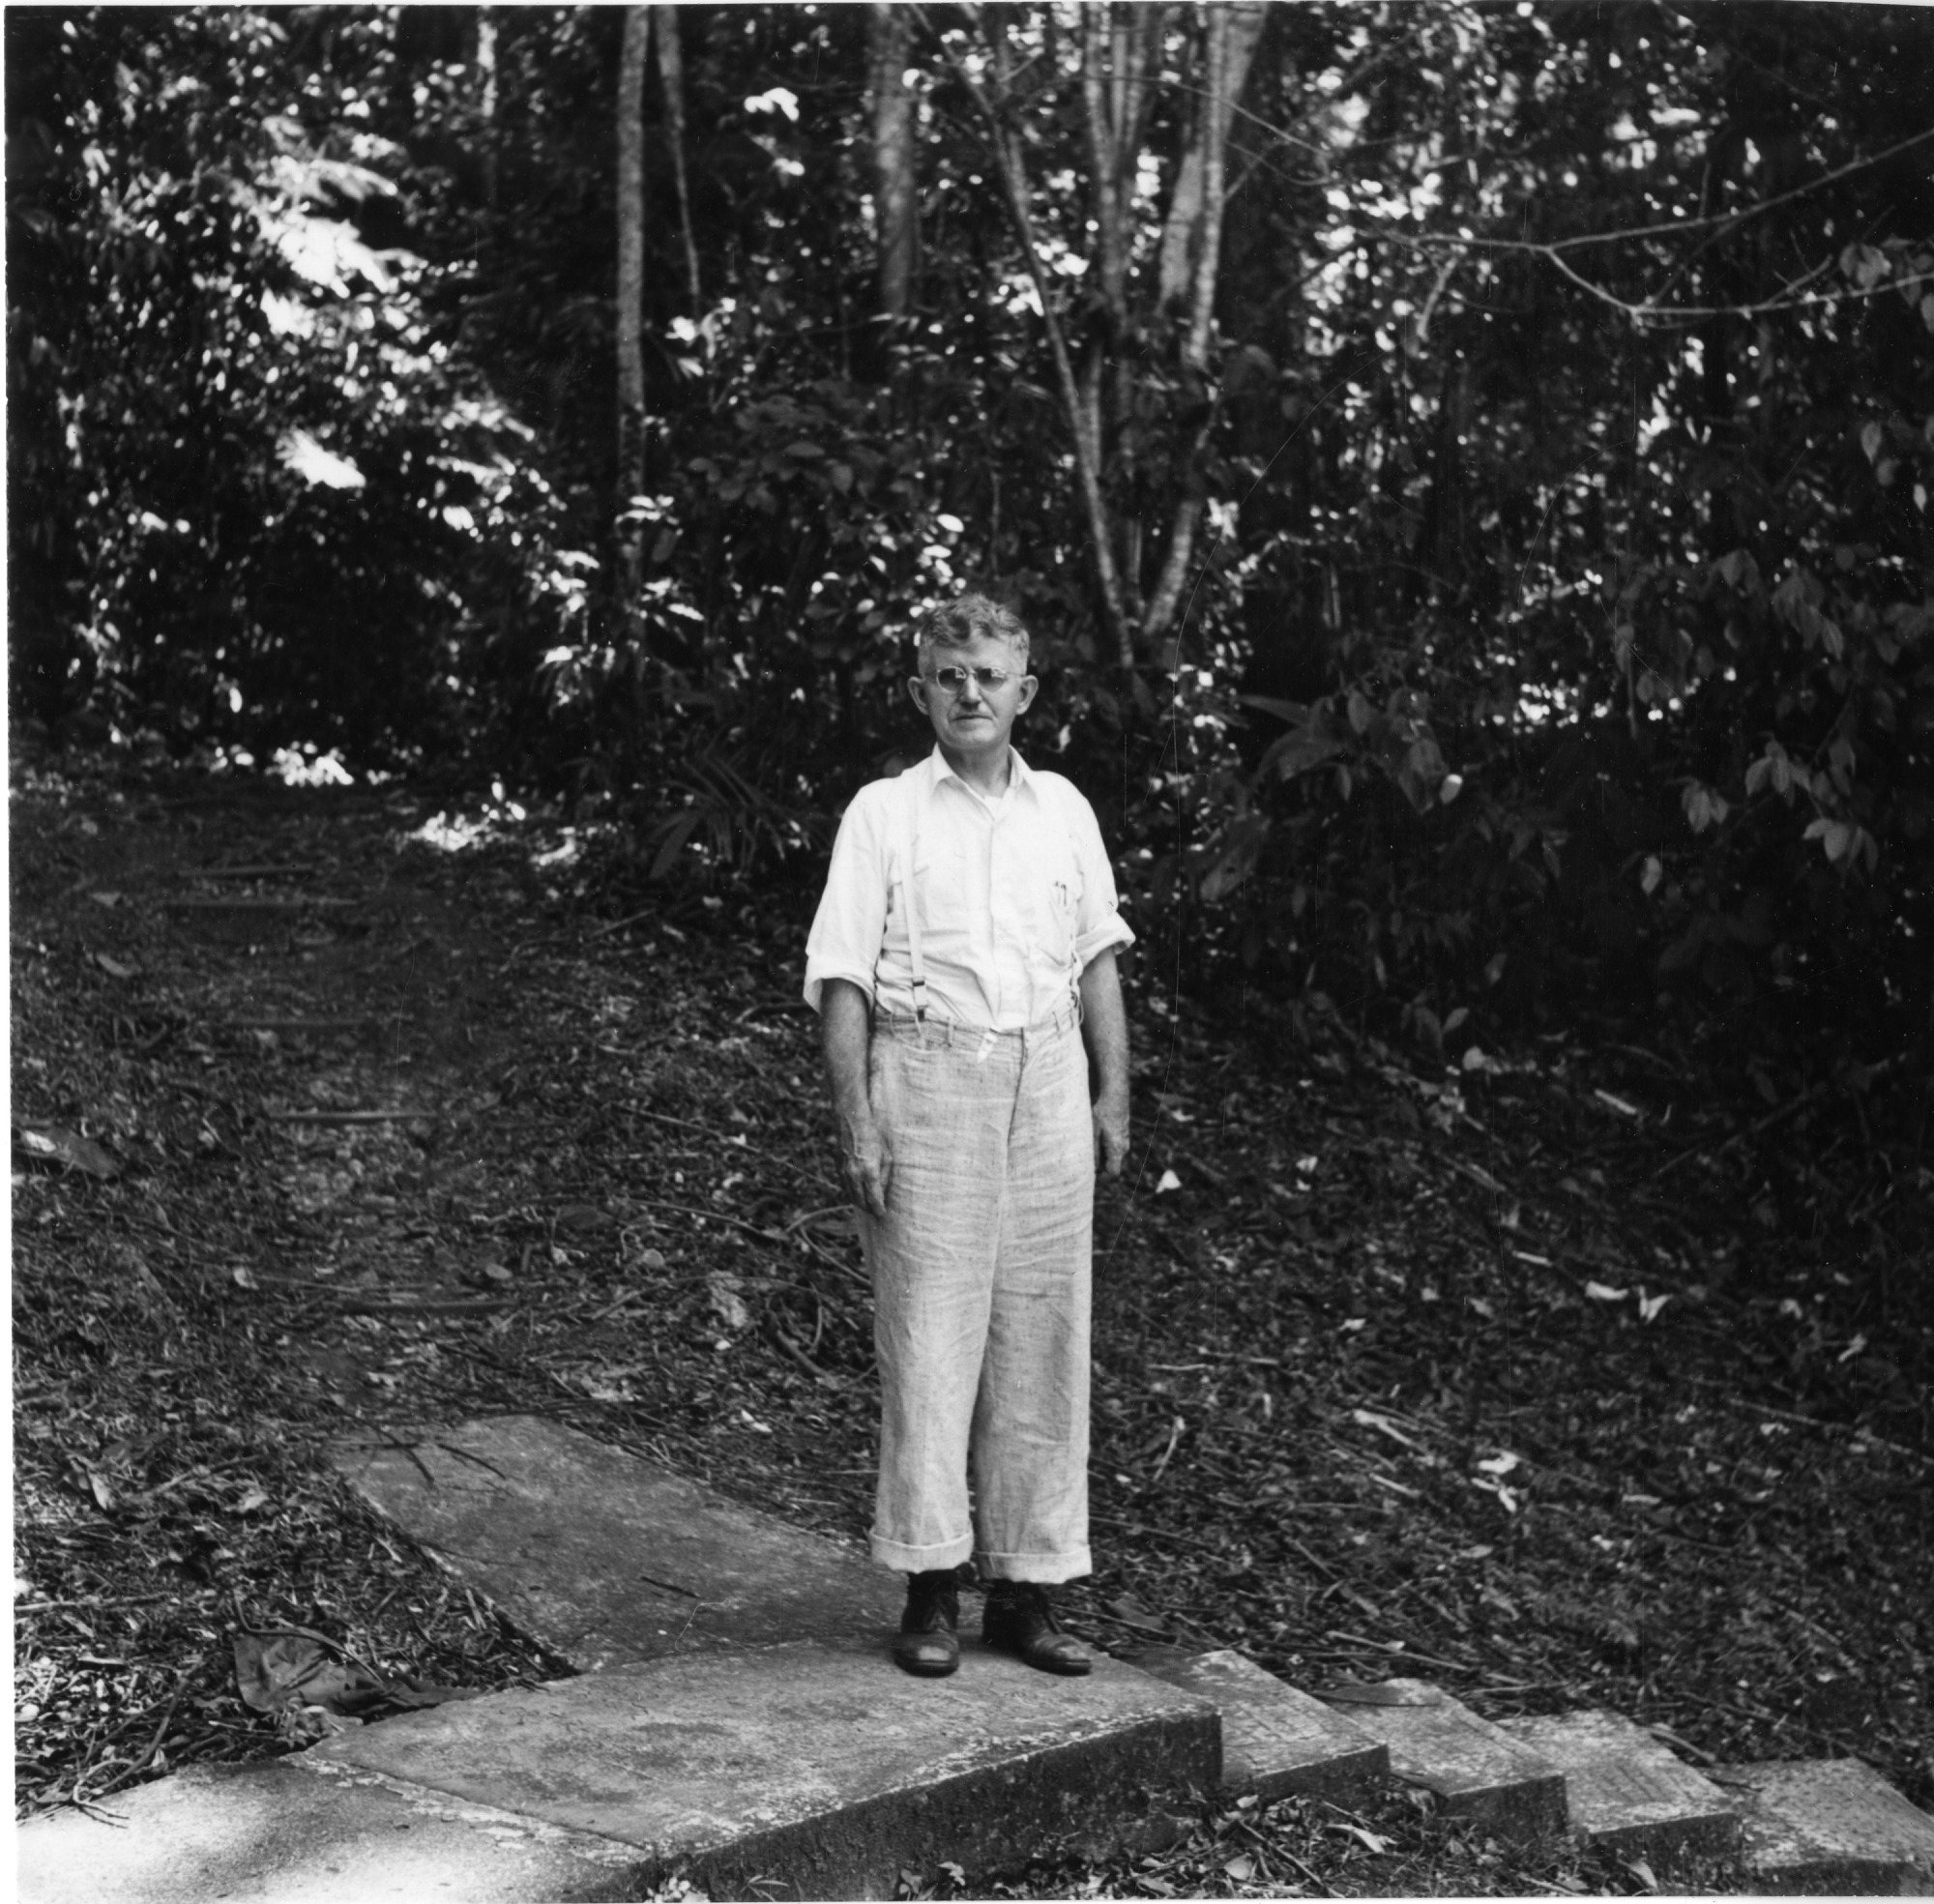 James Zetek on Barro Colorado Island, by Wetmore, Alexander 1886-, March 12, 1946, Smithsonian Archives - History Div, SIA2010-1174 or 2881.